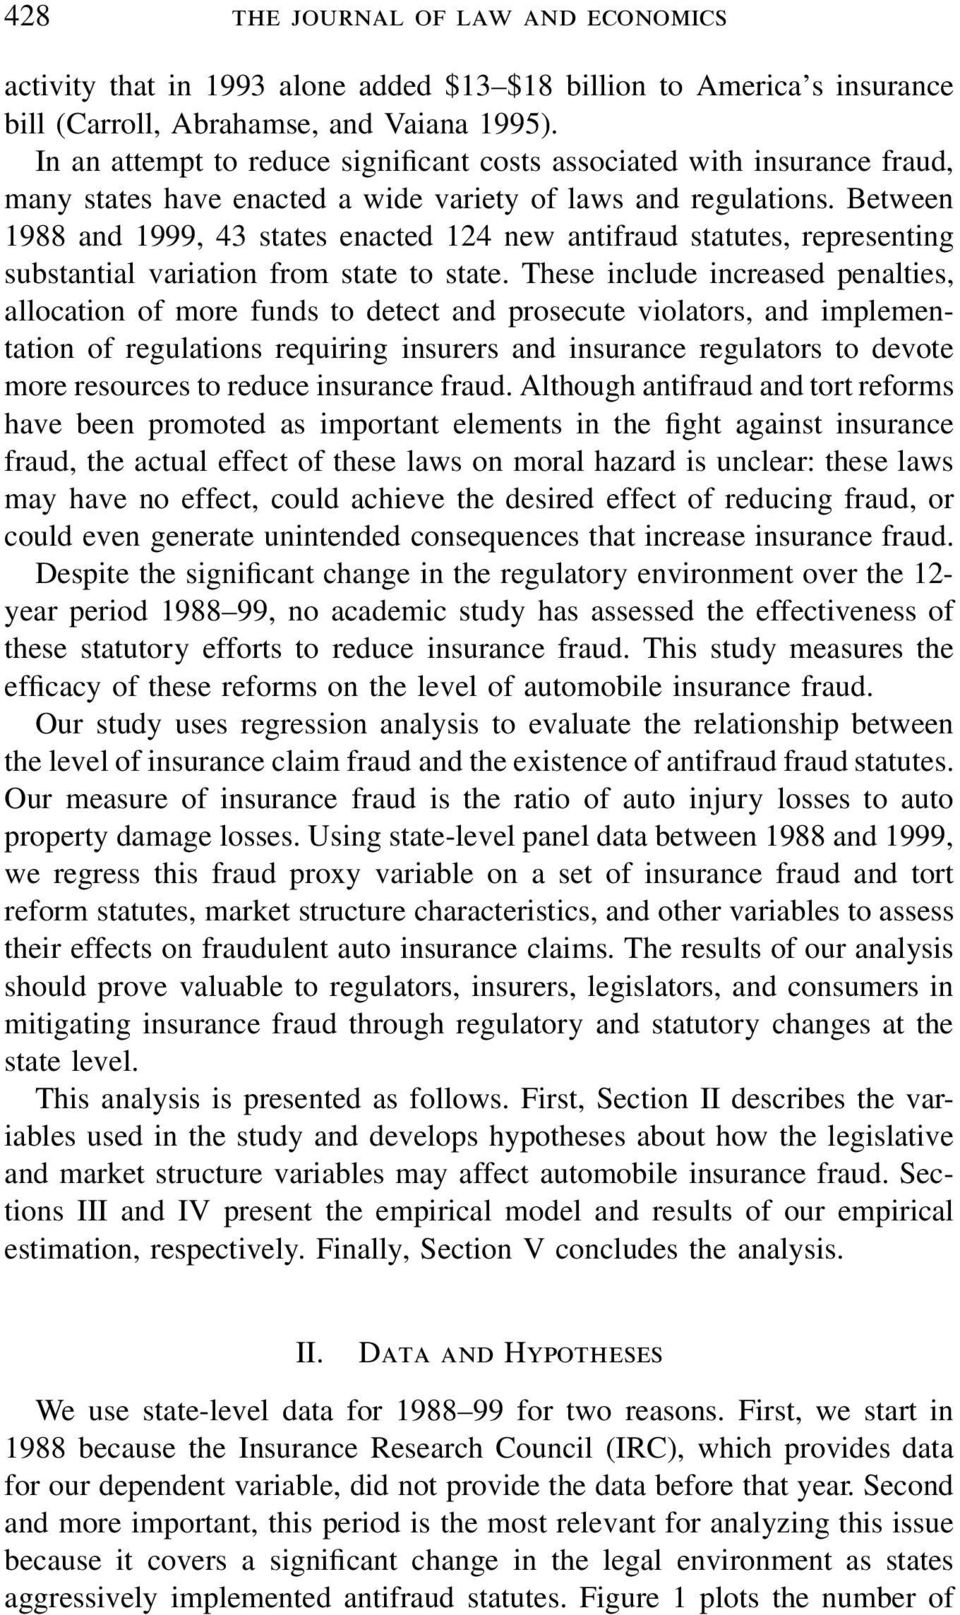 Between 1988 and 1999, 43 states enacted 124 new antifraud statutes, representing substantial variation from state to state.